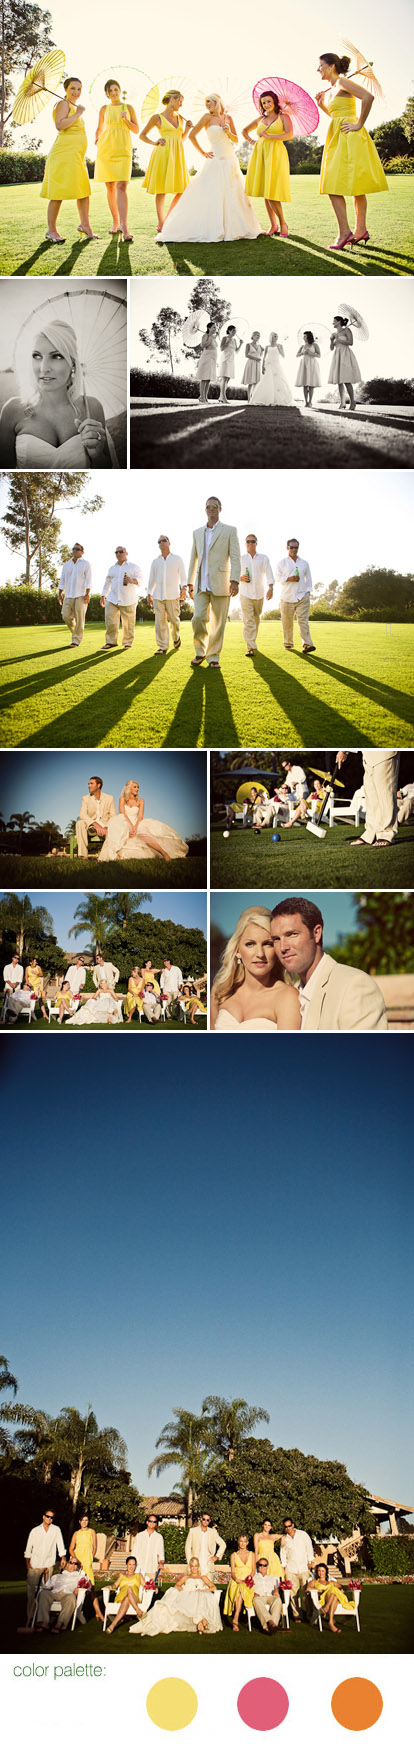 San Diego wedding at Rancho Valencia Resort, wedding party with parasols, lime green, lemon yellow, orange and pink wedding color palette, images by Natalie Moser Photography